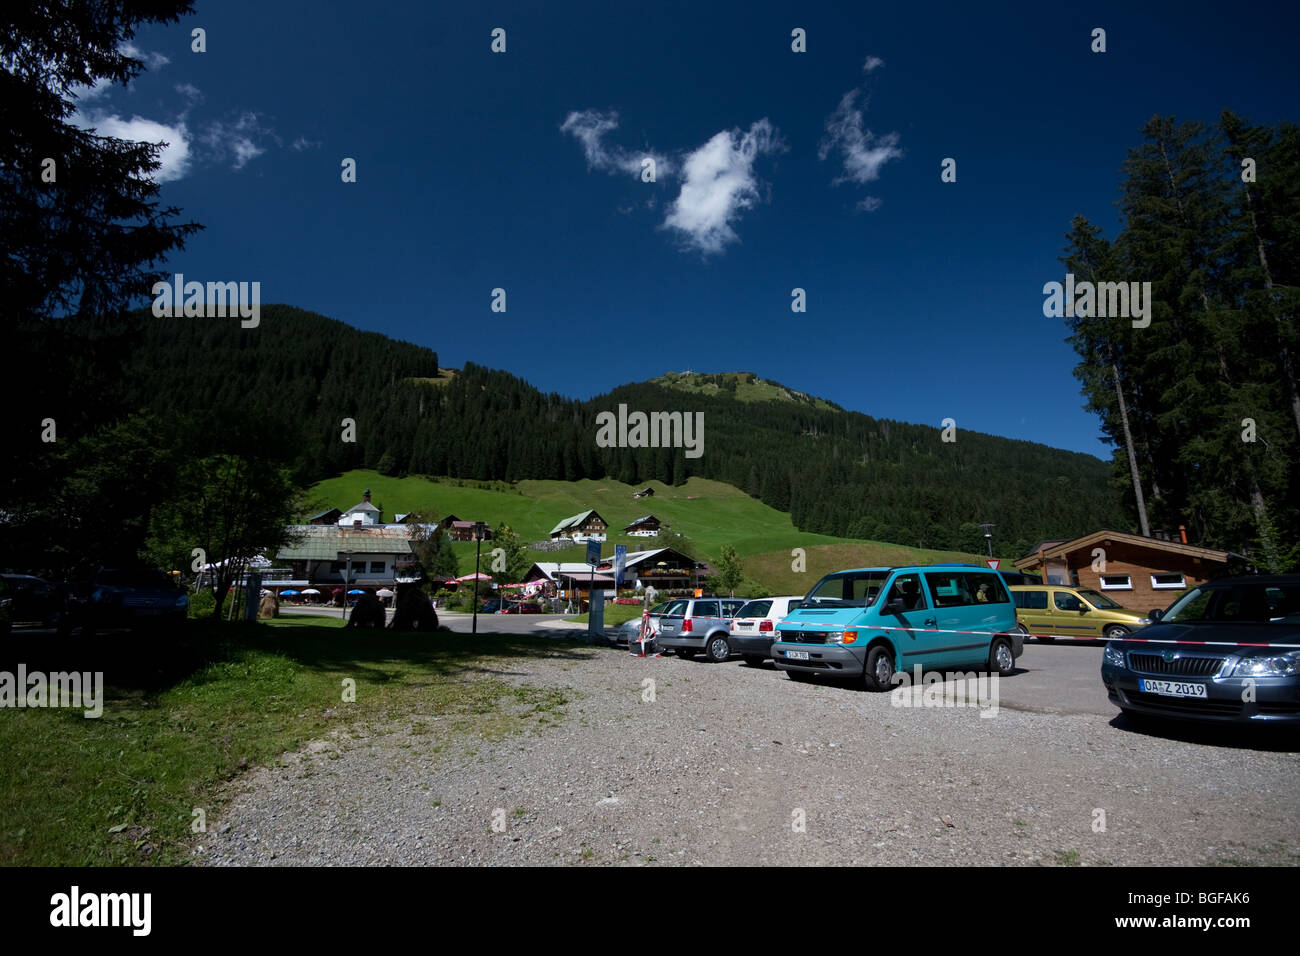 Picturesque view of picnic spot in Bavaria, Germany Stock Photo